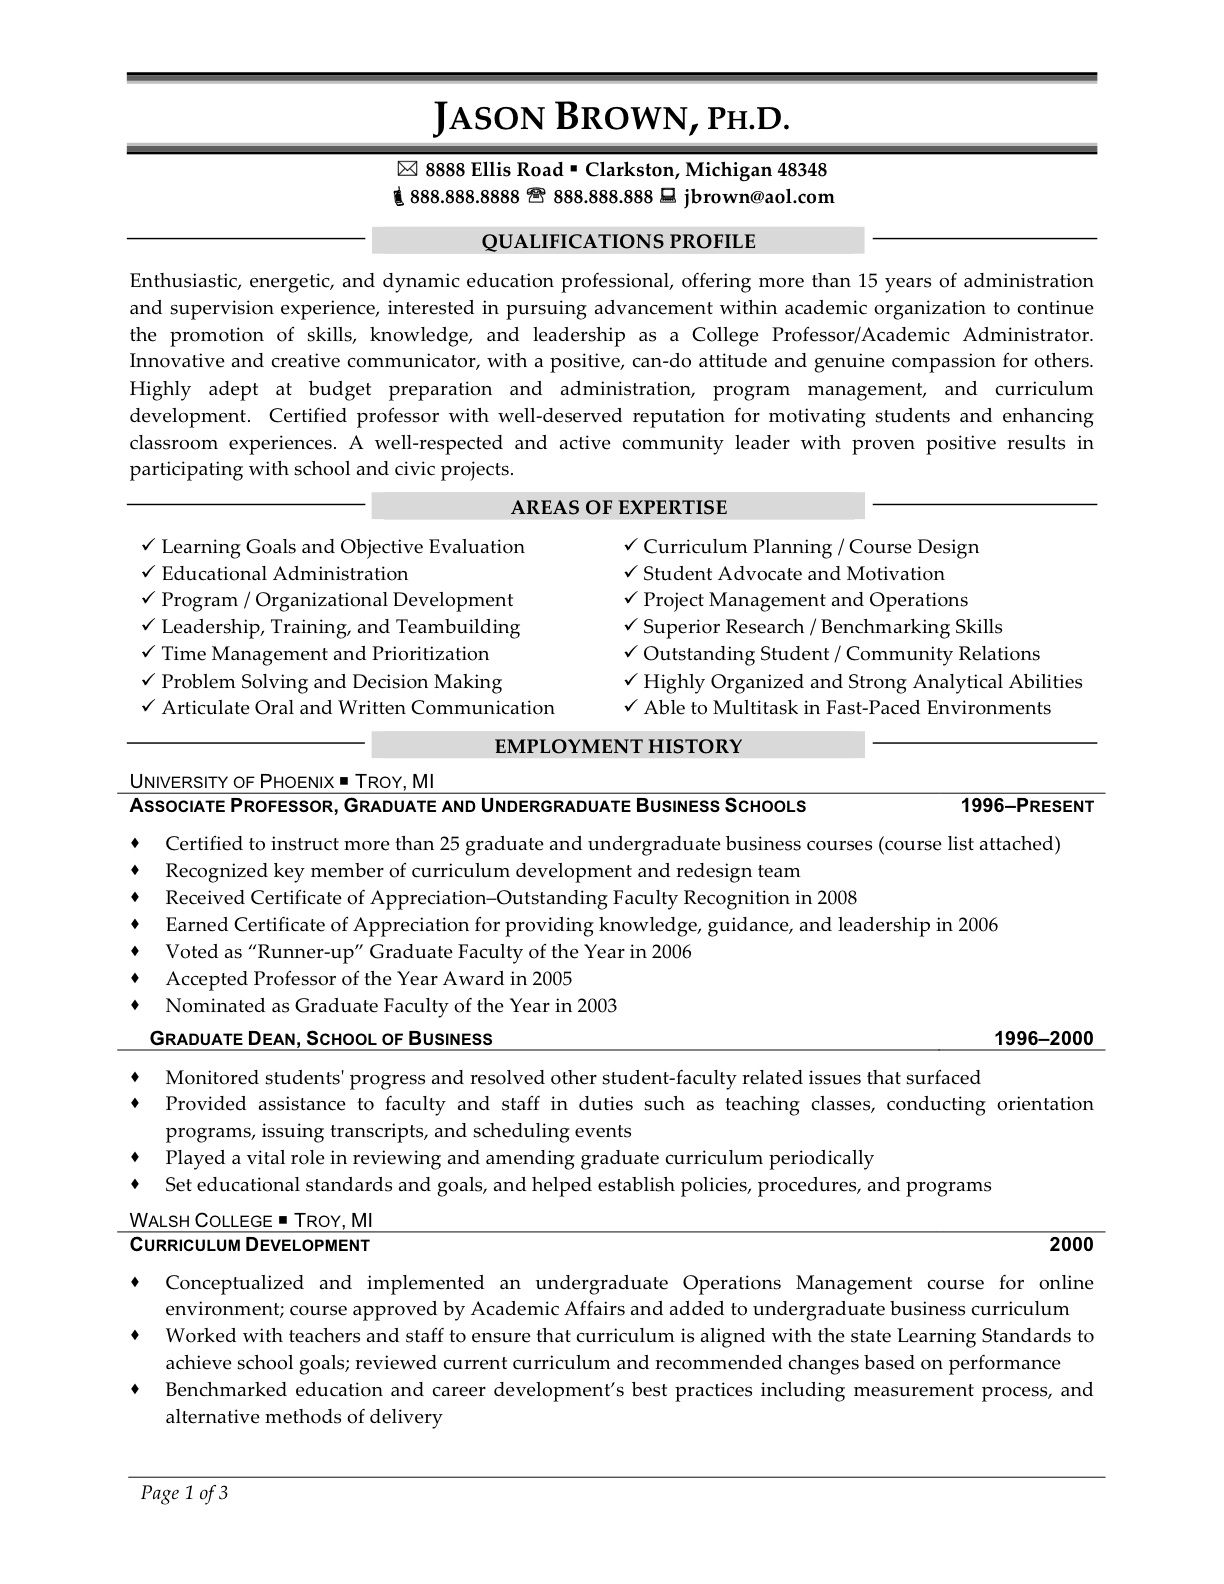 Academic Resume Sample Resume For Professor Job Careerperfect Academic Skill Cover